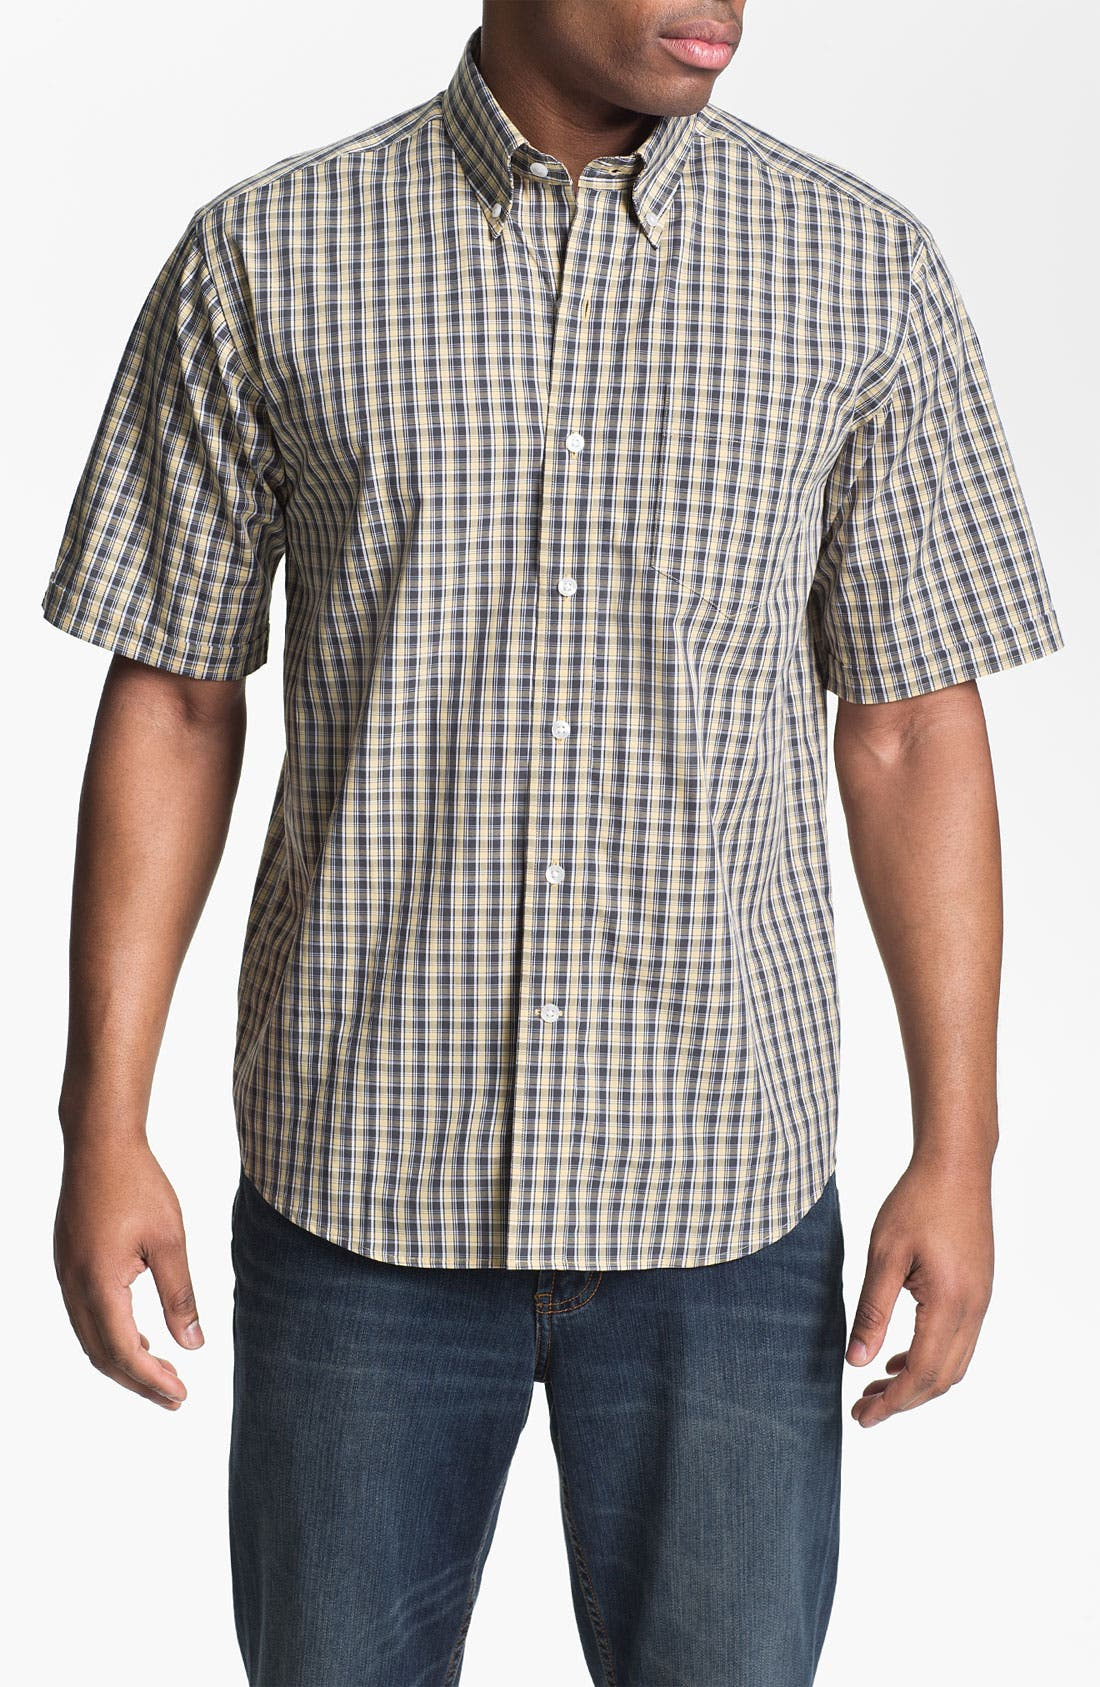 Main Image - Cutter & Buck 'Midvale' Check Sport Shirt (Big & Tall)